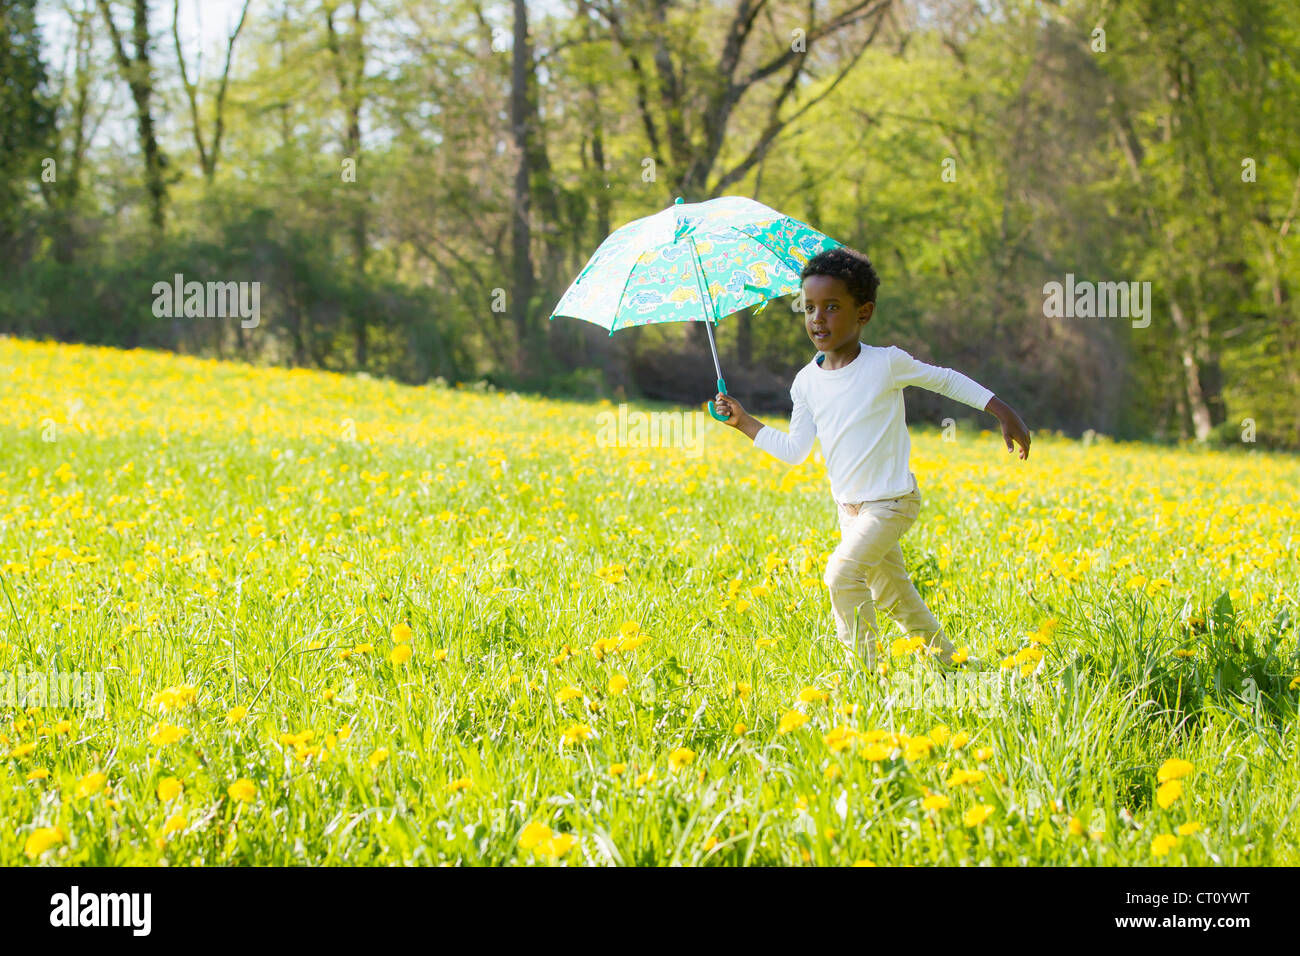 Boy carrying umbrella in field - Stock Image